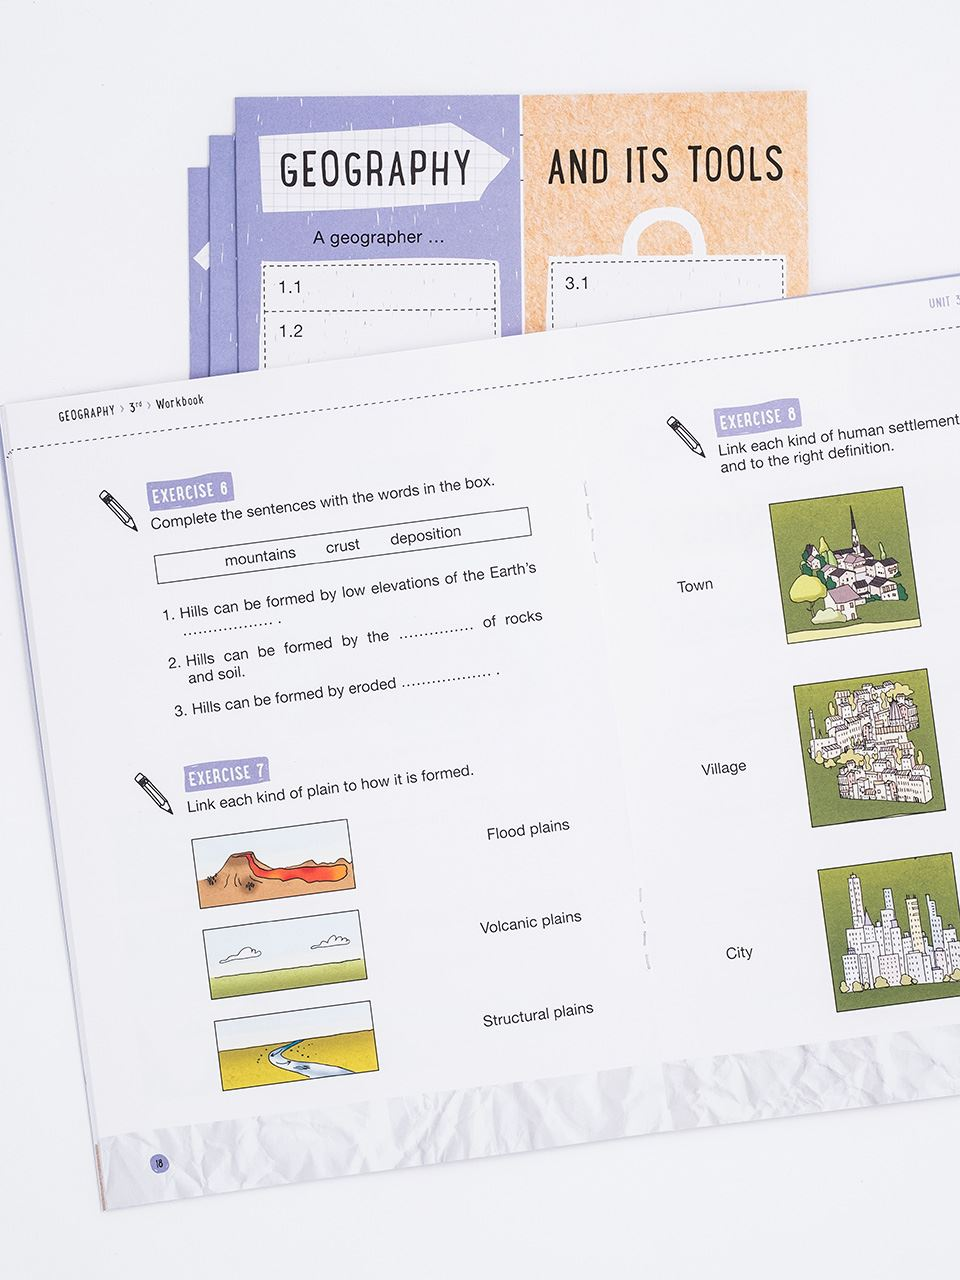 CLIL with LAPBOOK - GEOGRAPHY - Classe terza - Libri - Erickson 4